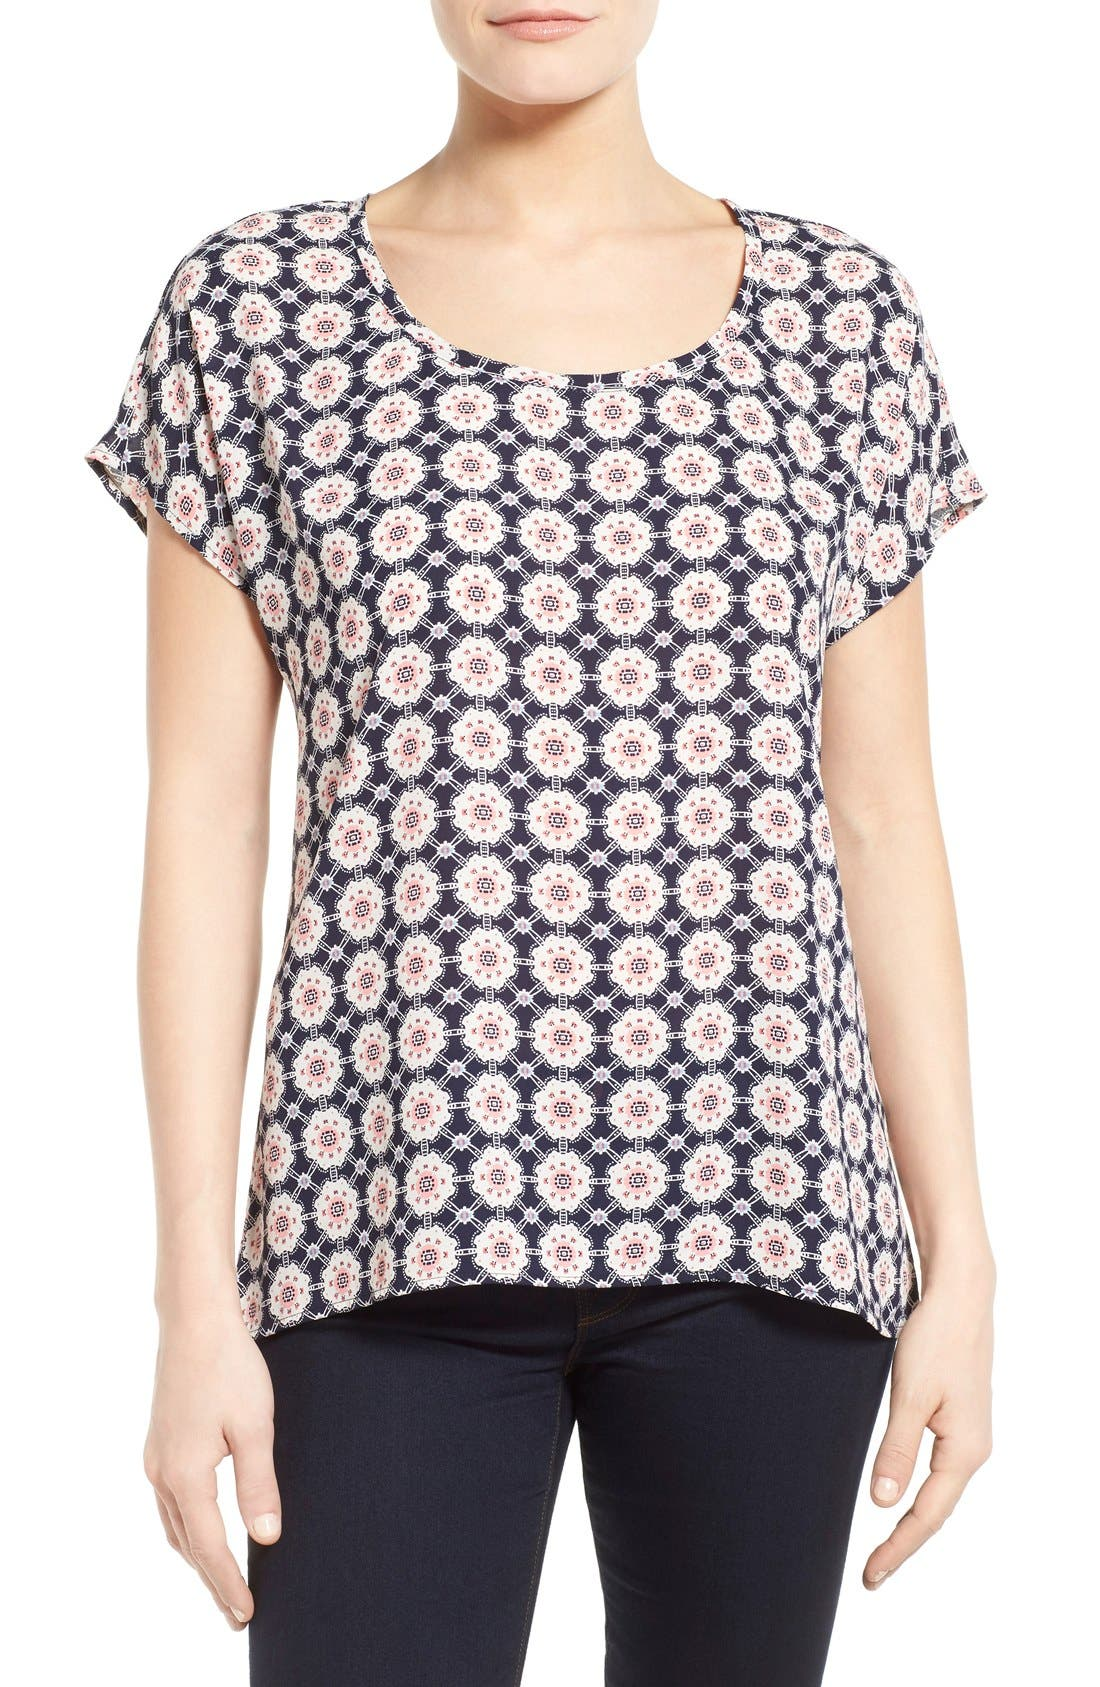 Alternate Image 1 Selected - Pleione Scoop Neck Short Sleeve Blouse (Regular & Petite)